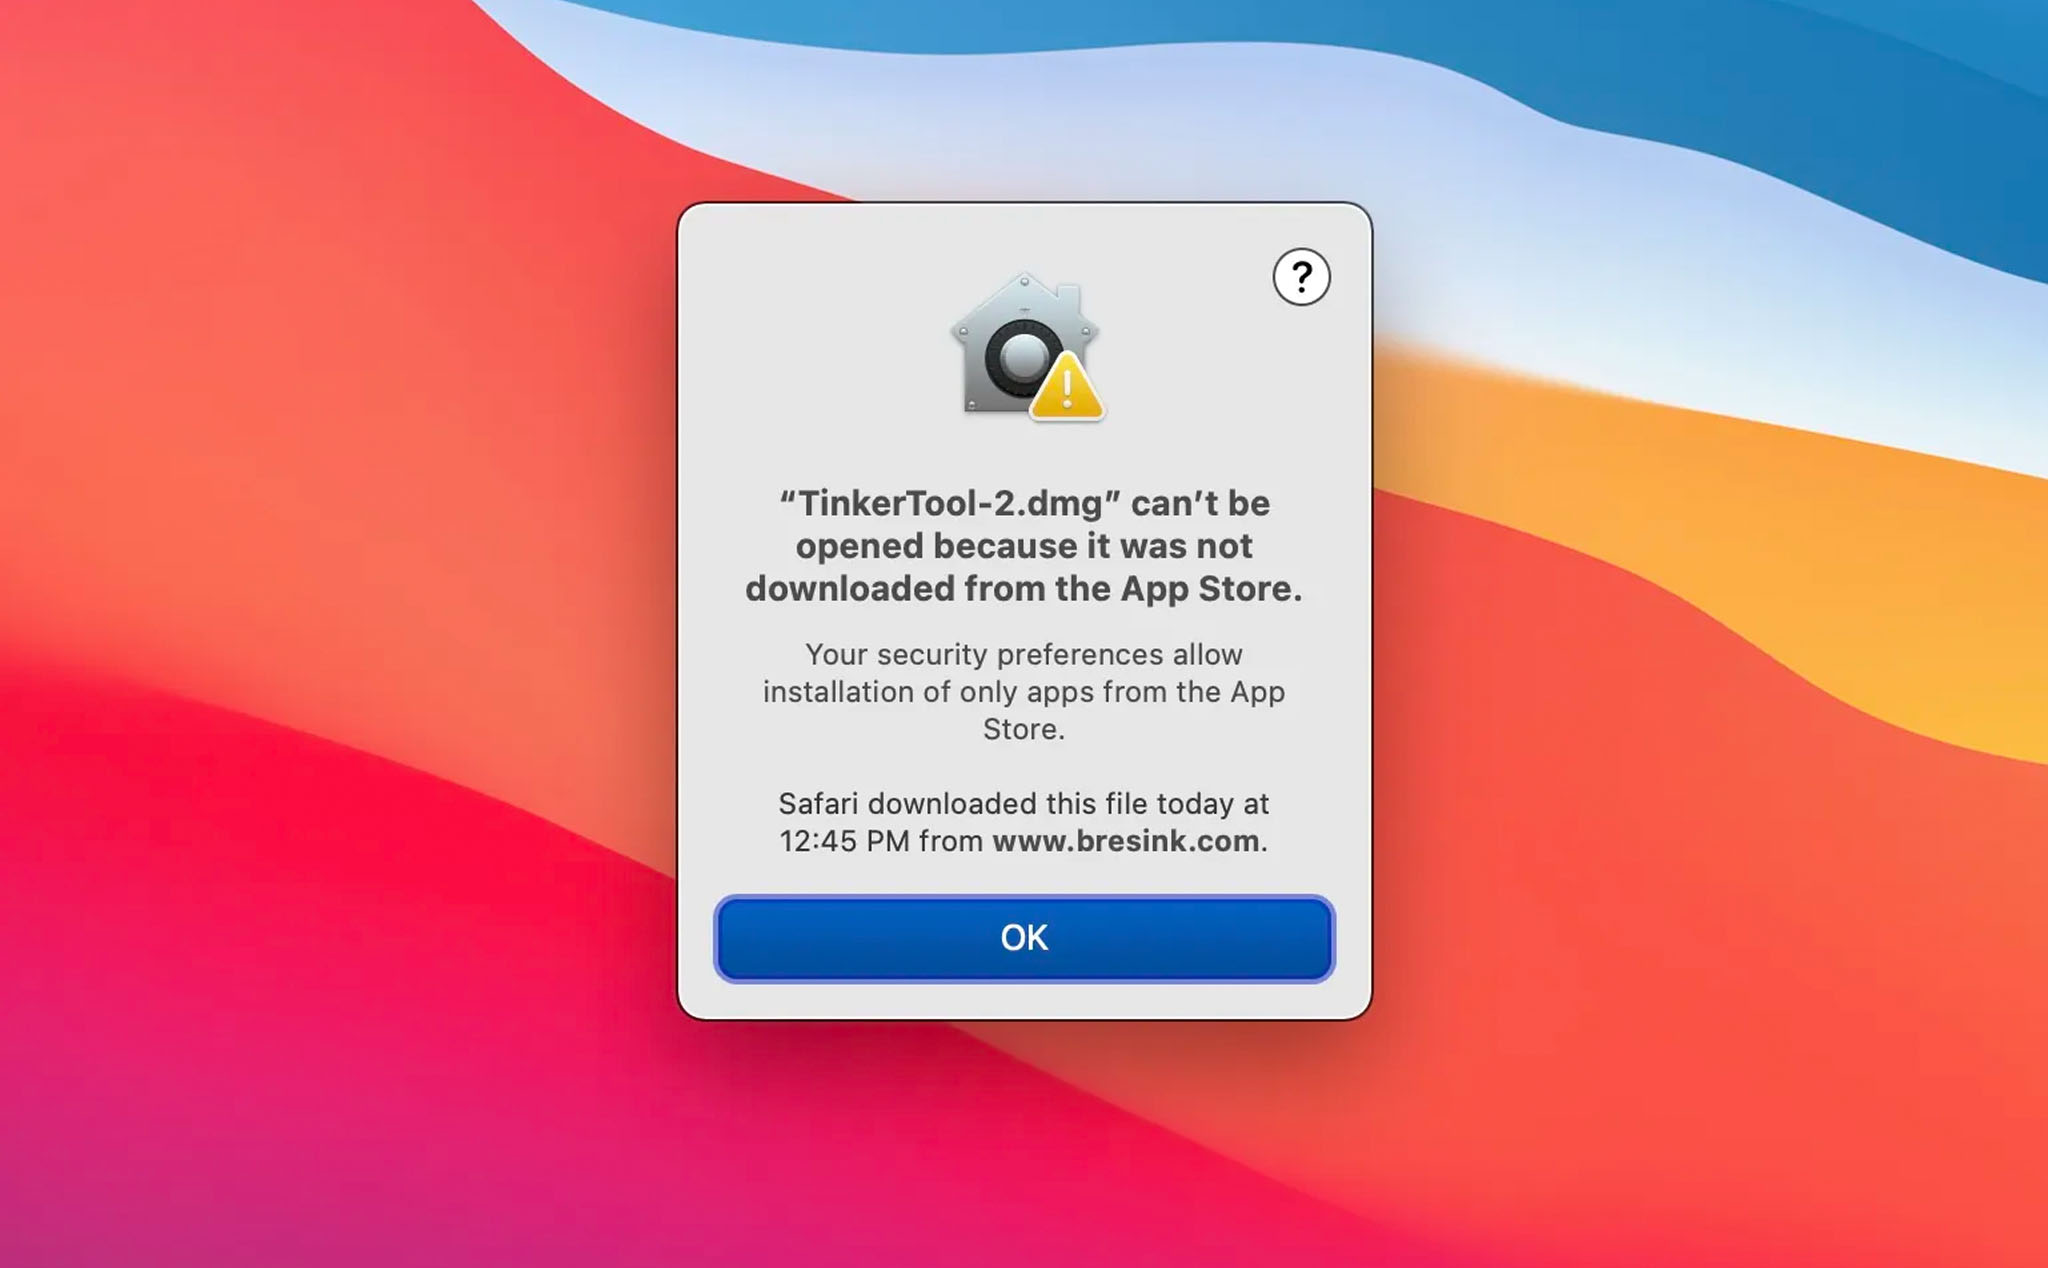 """Cách xử lý tình trạng """"app can't be opened because it was not downloaded from the App Store"""""""